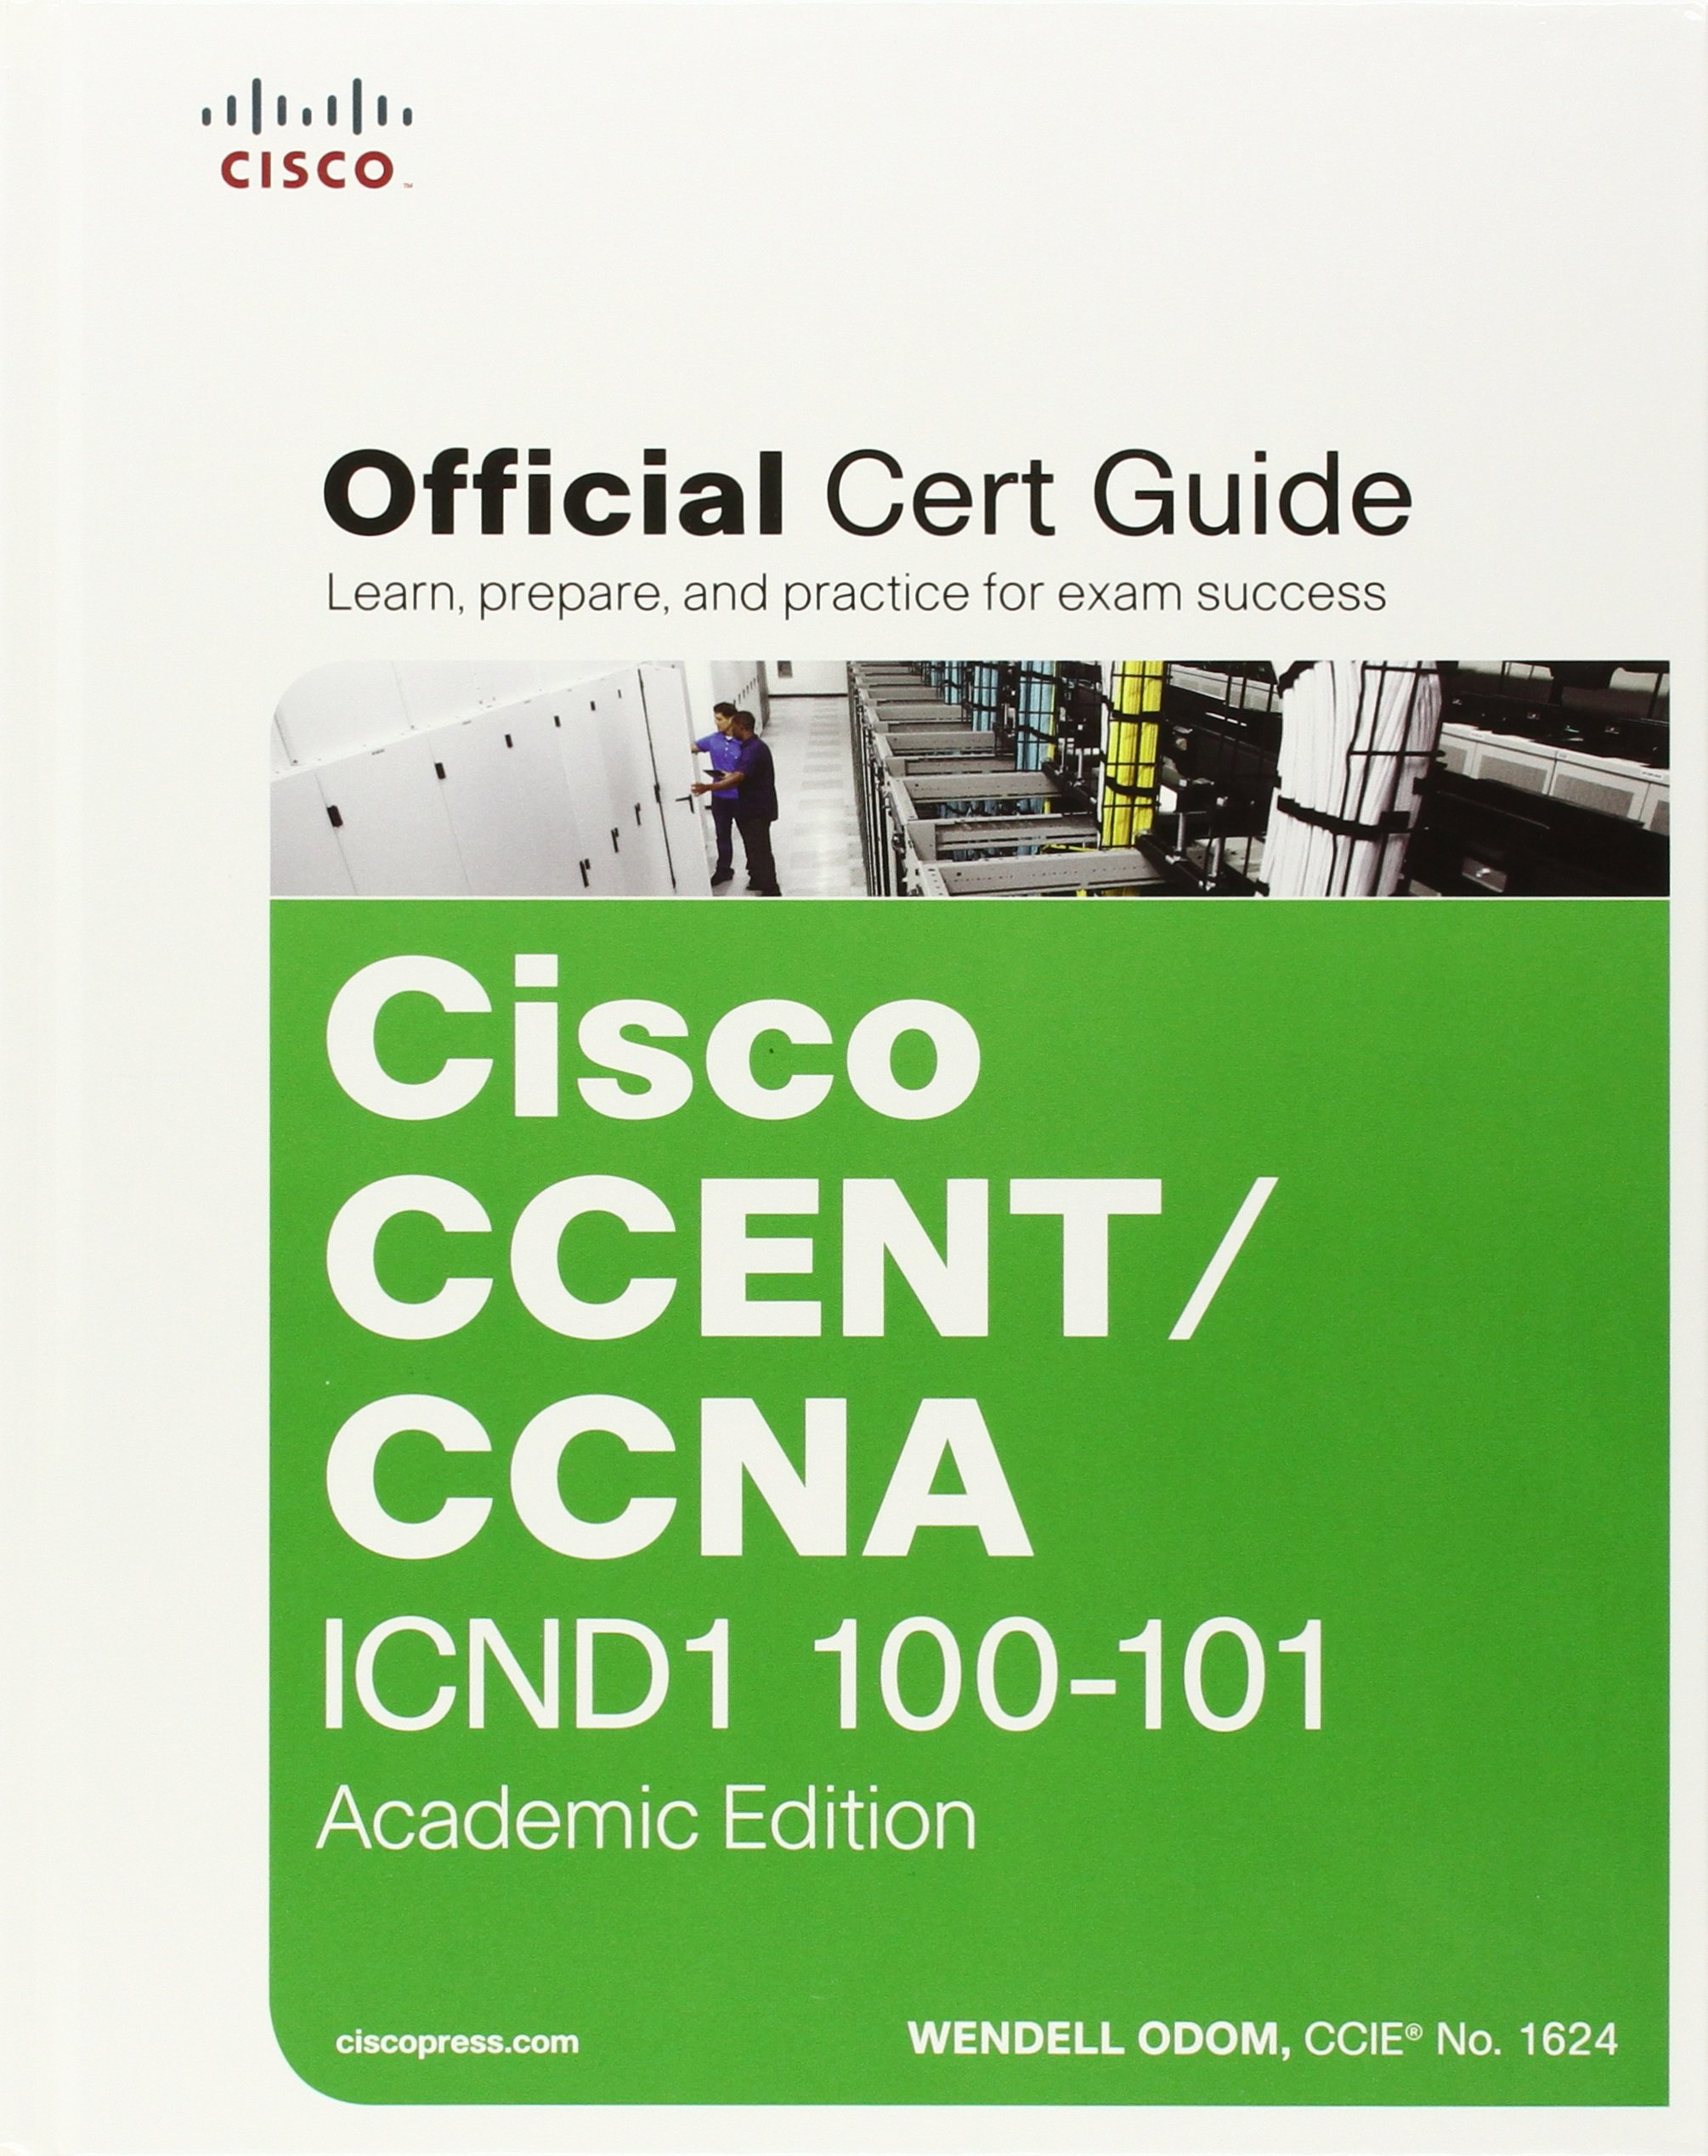 Cisco CCENT/CCNA ICND1 100-101 Official Cert Guide Academic Edition with  MyITCertificationlab Bundle: 9781587143861: Amazon.com: Books